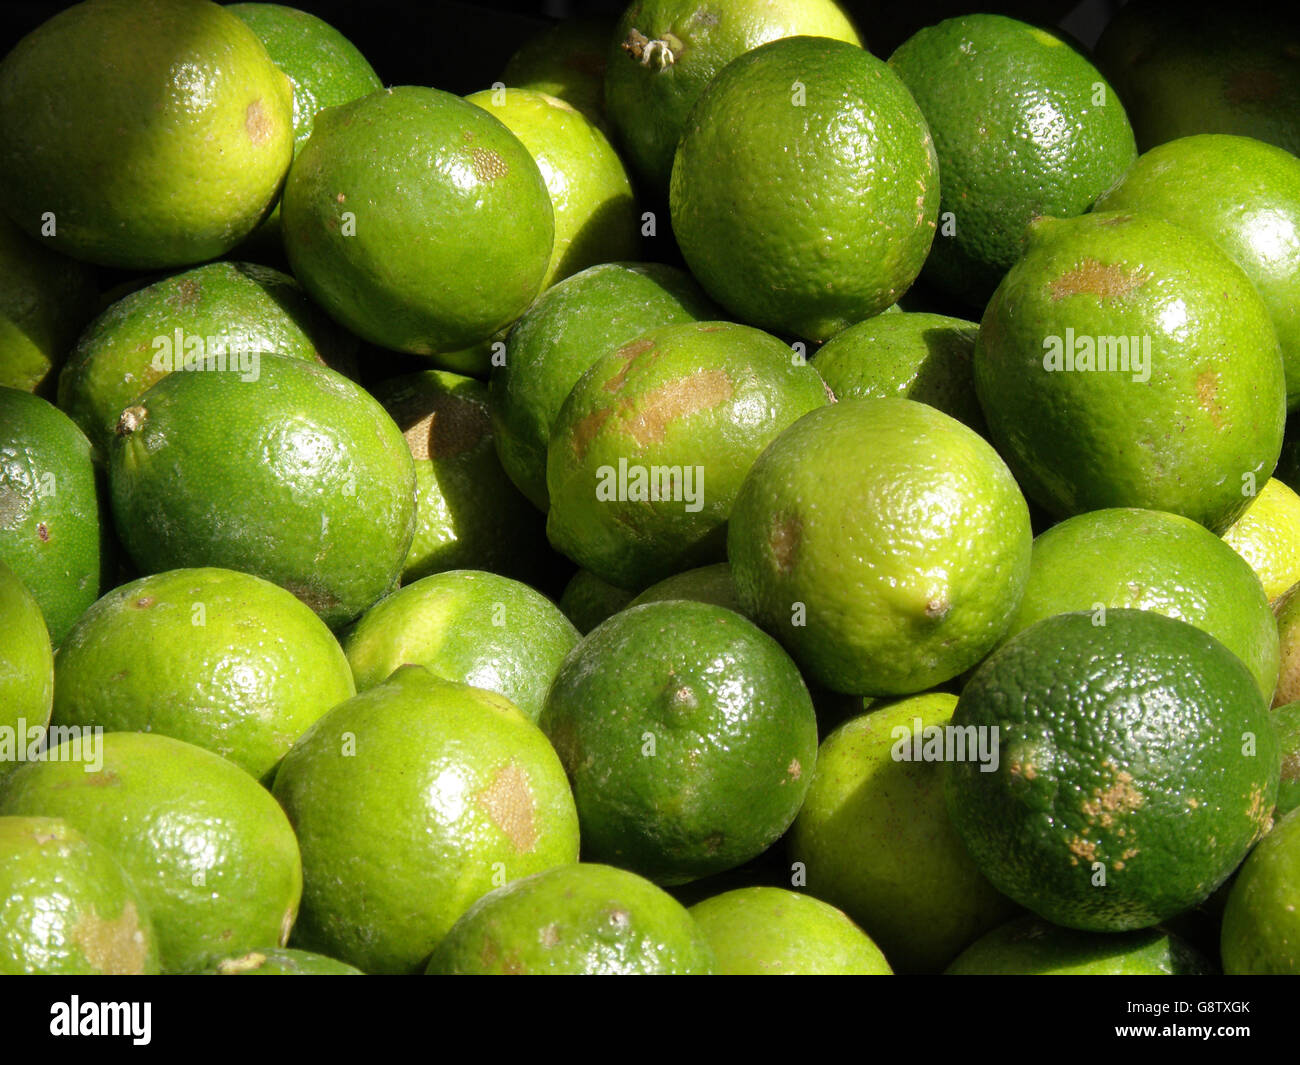 Ripe limes at a farm stand. - Stock Image